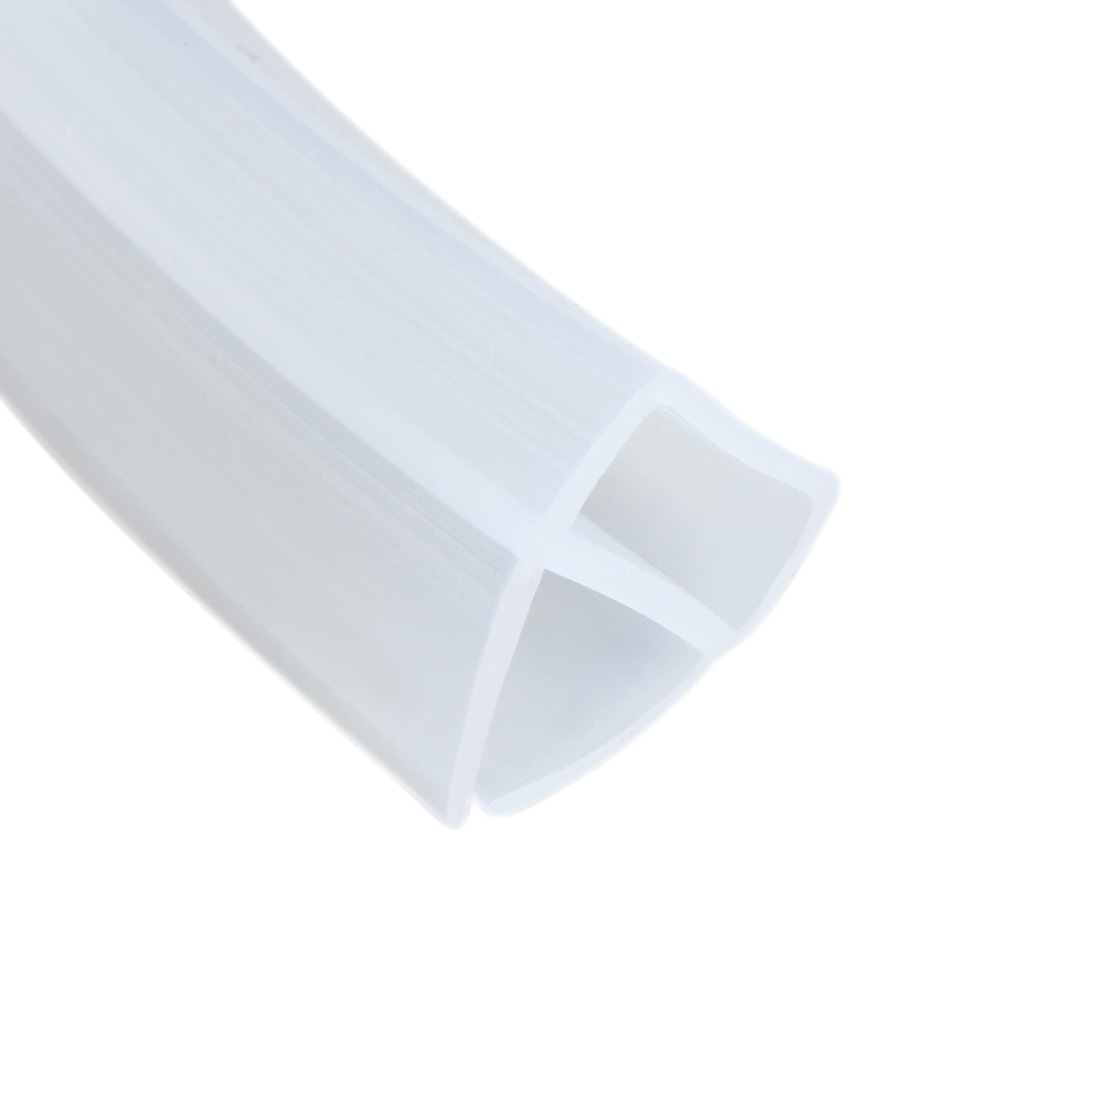 78.7-inch U Shaped Frameless Window Shower Door Seal Clear for 1/4-inch Glass